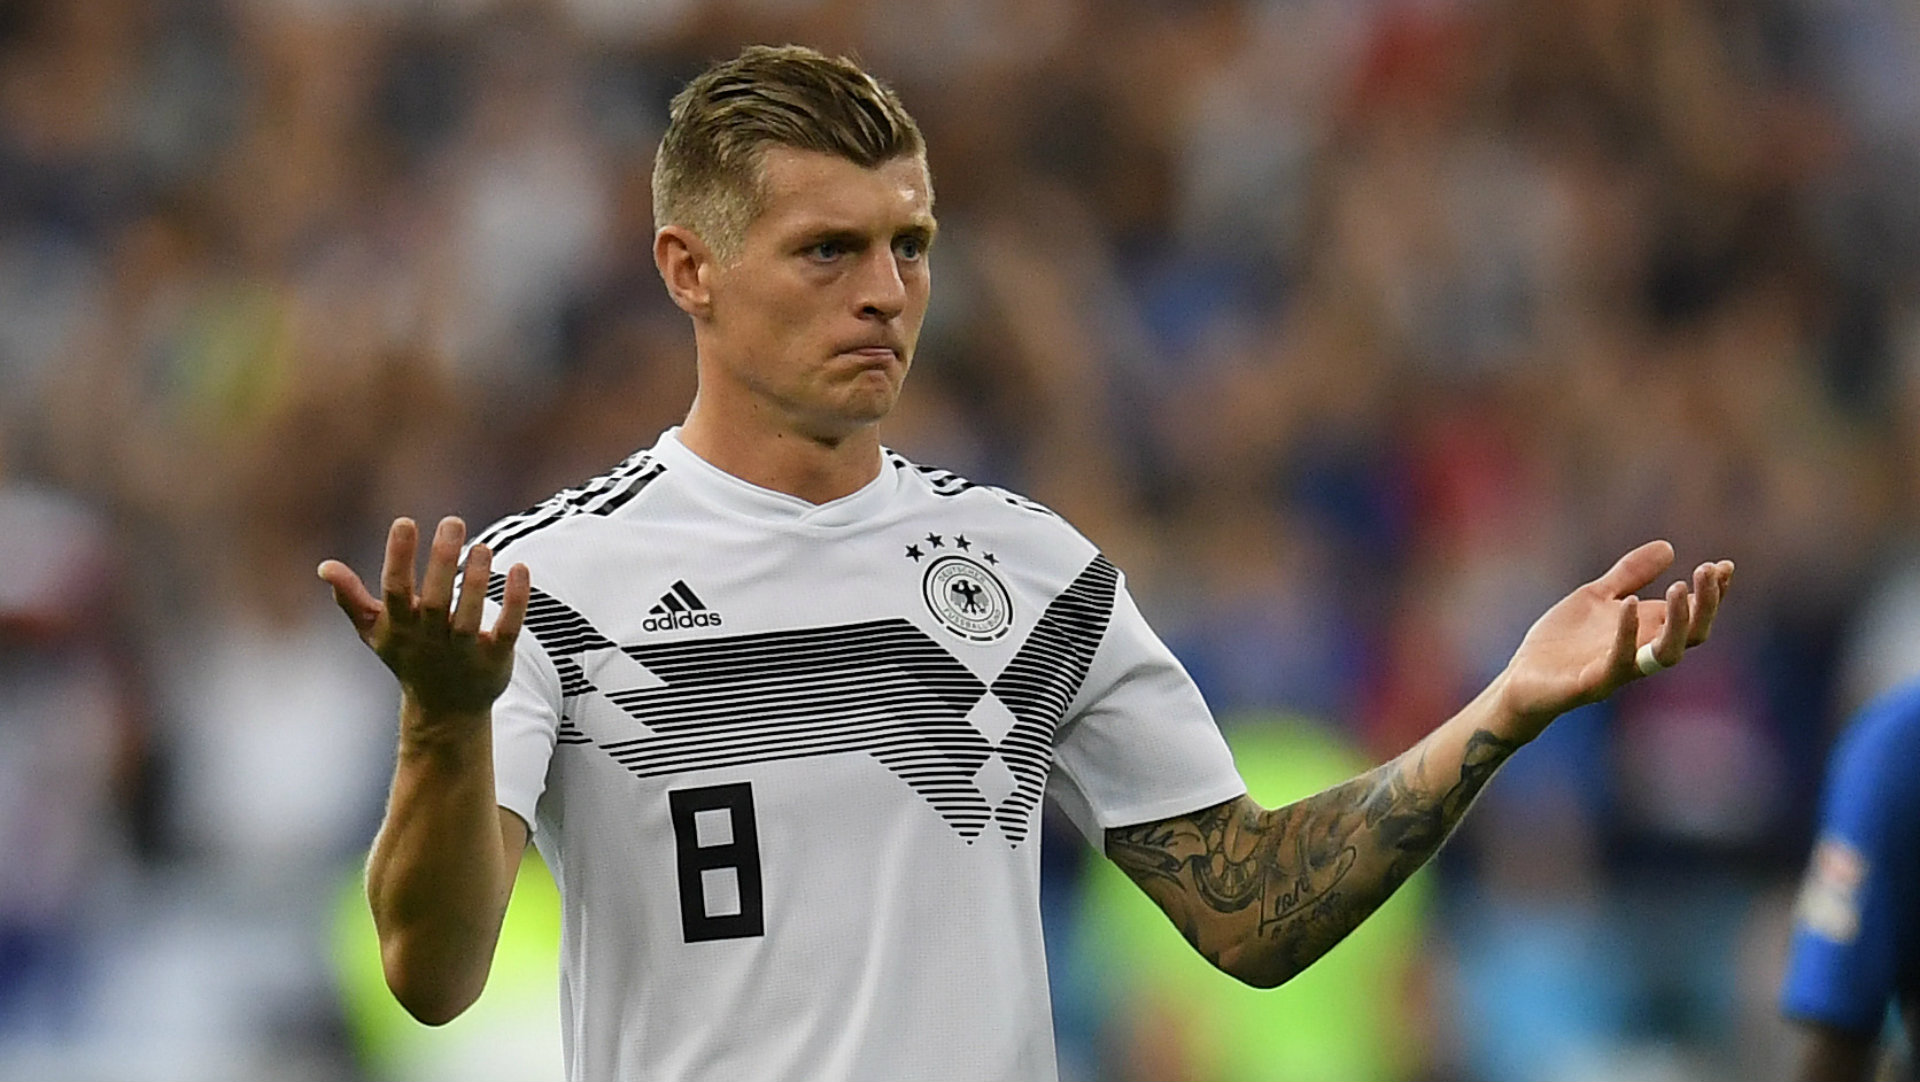 'I care more about titles' - Kroos delighted to reach Germany achievement but wants team success